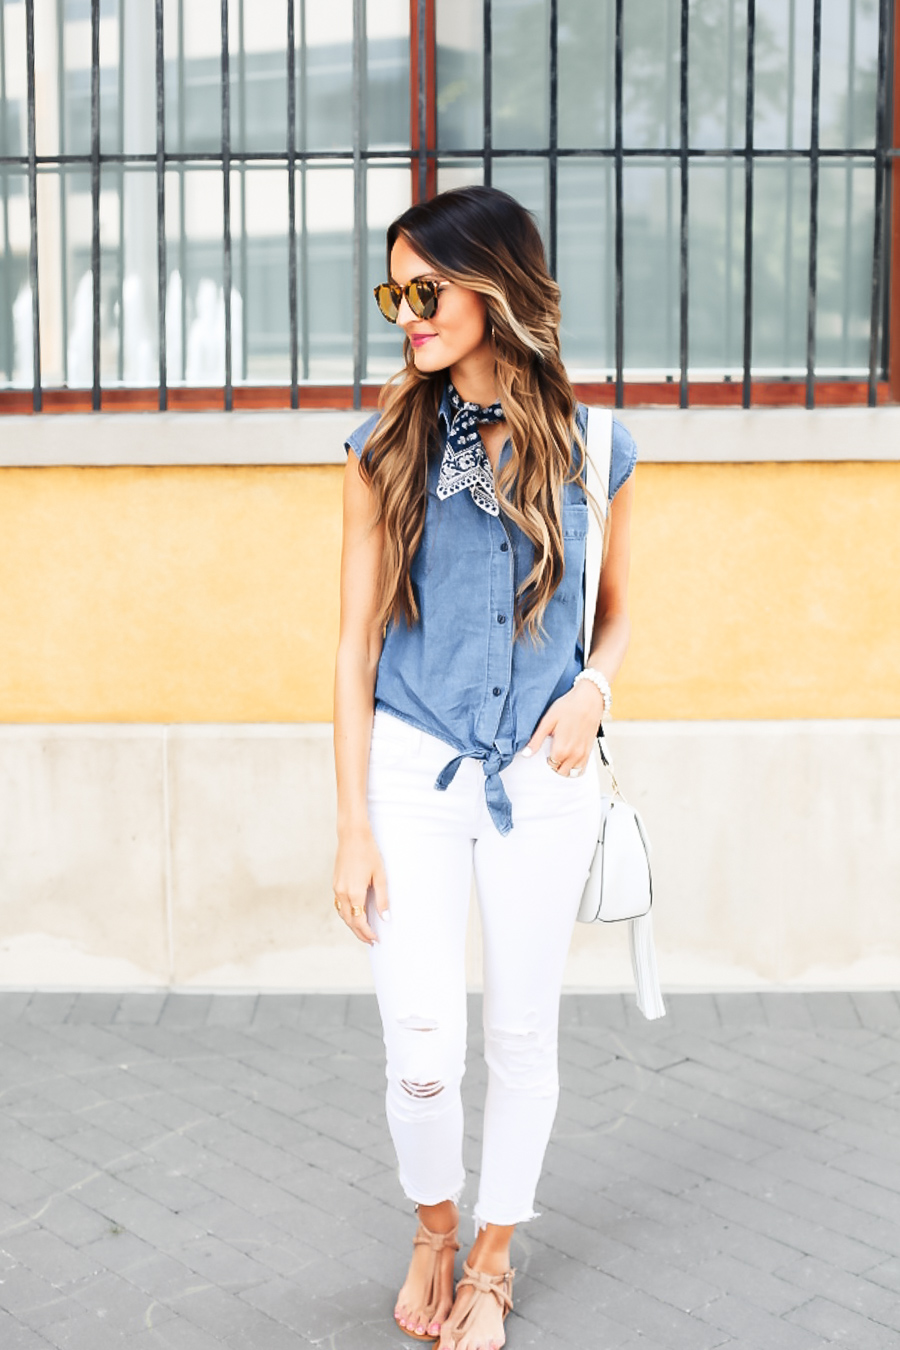 all-american: denim top + bandana